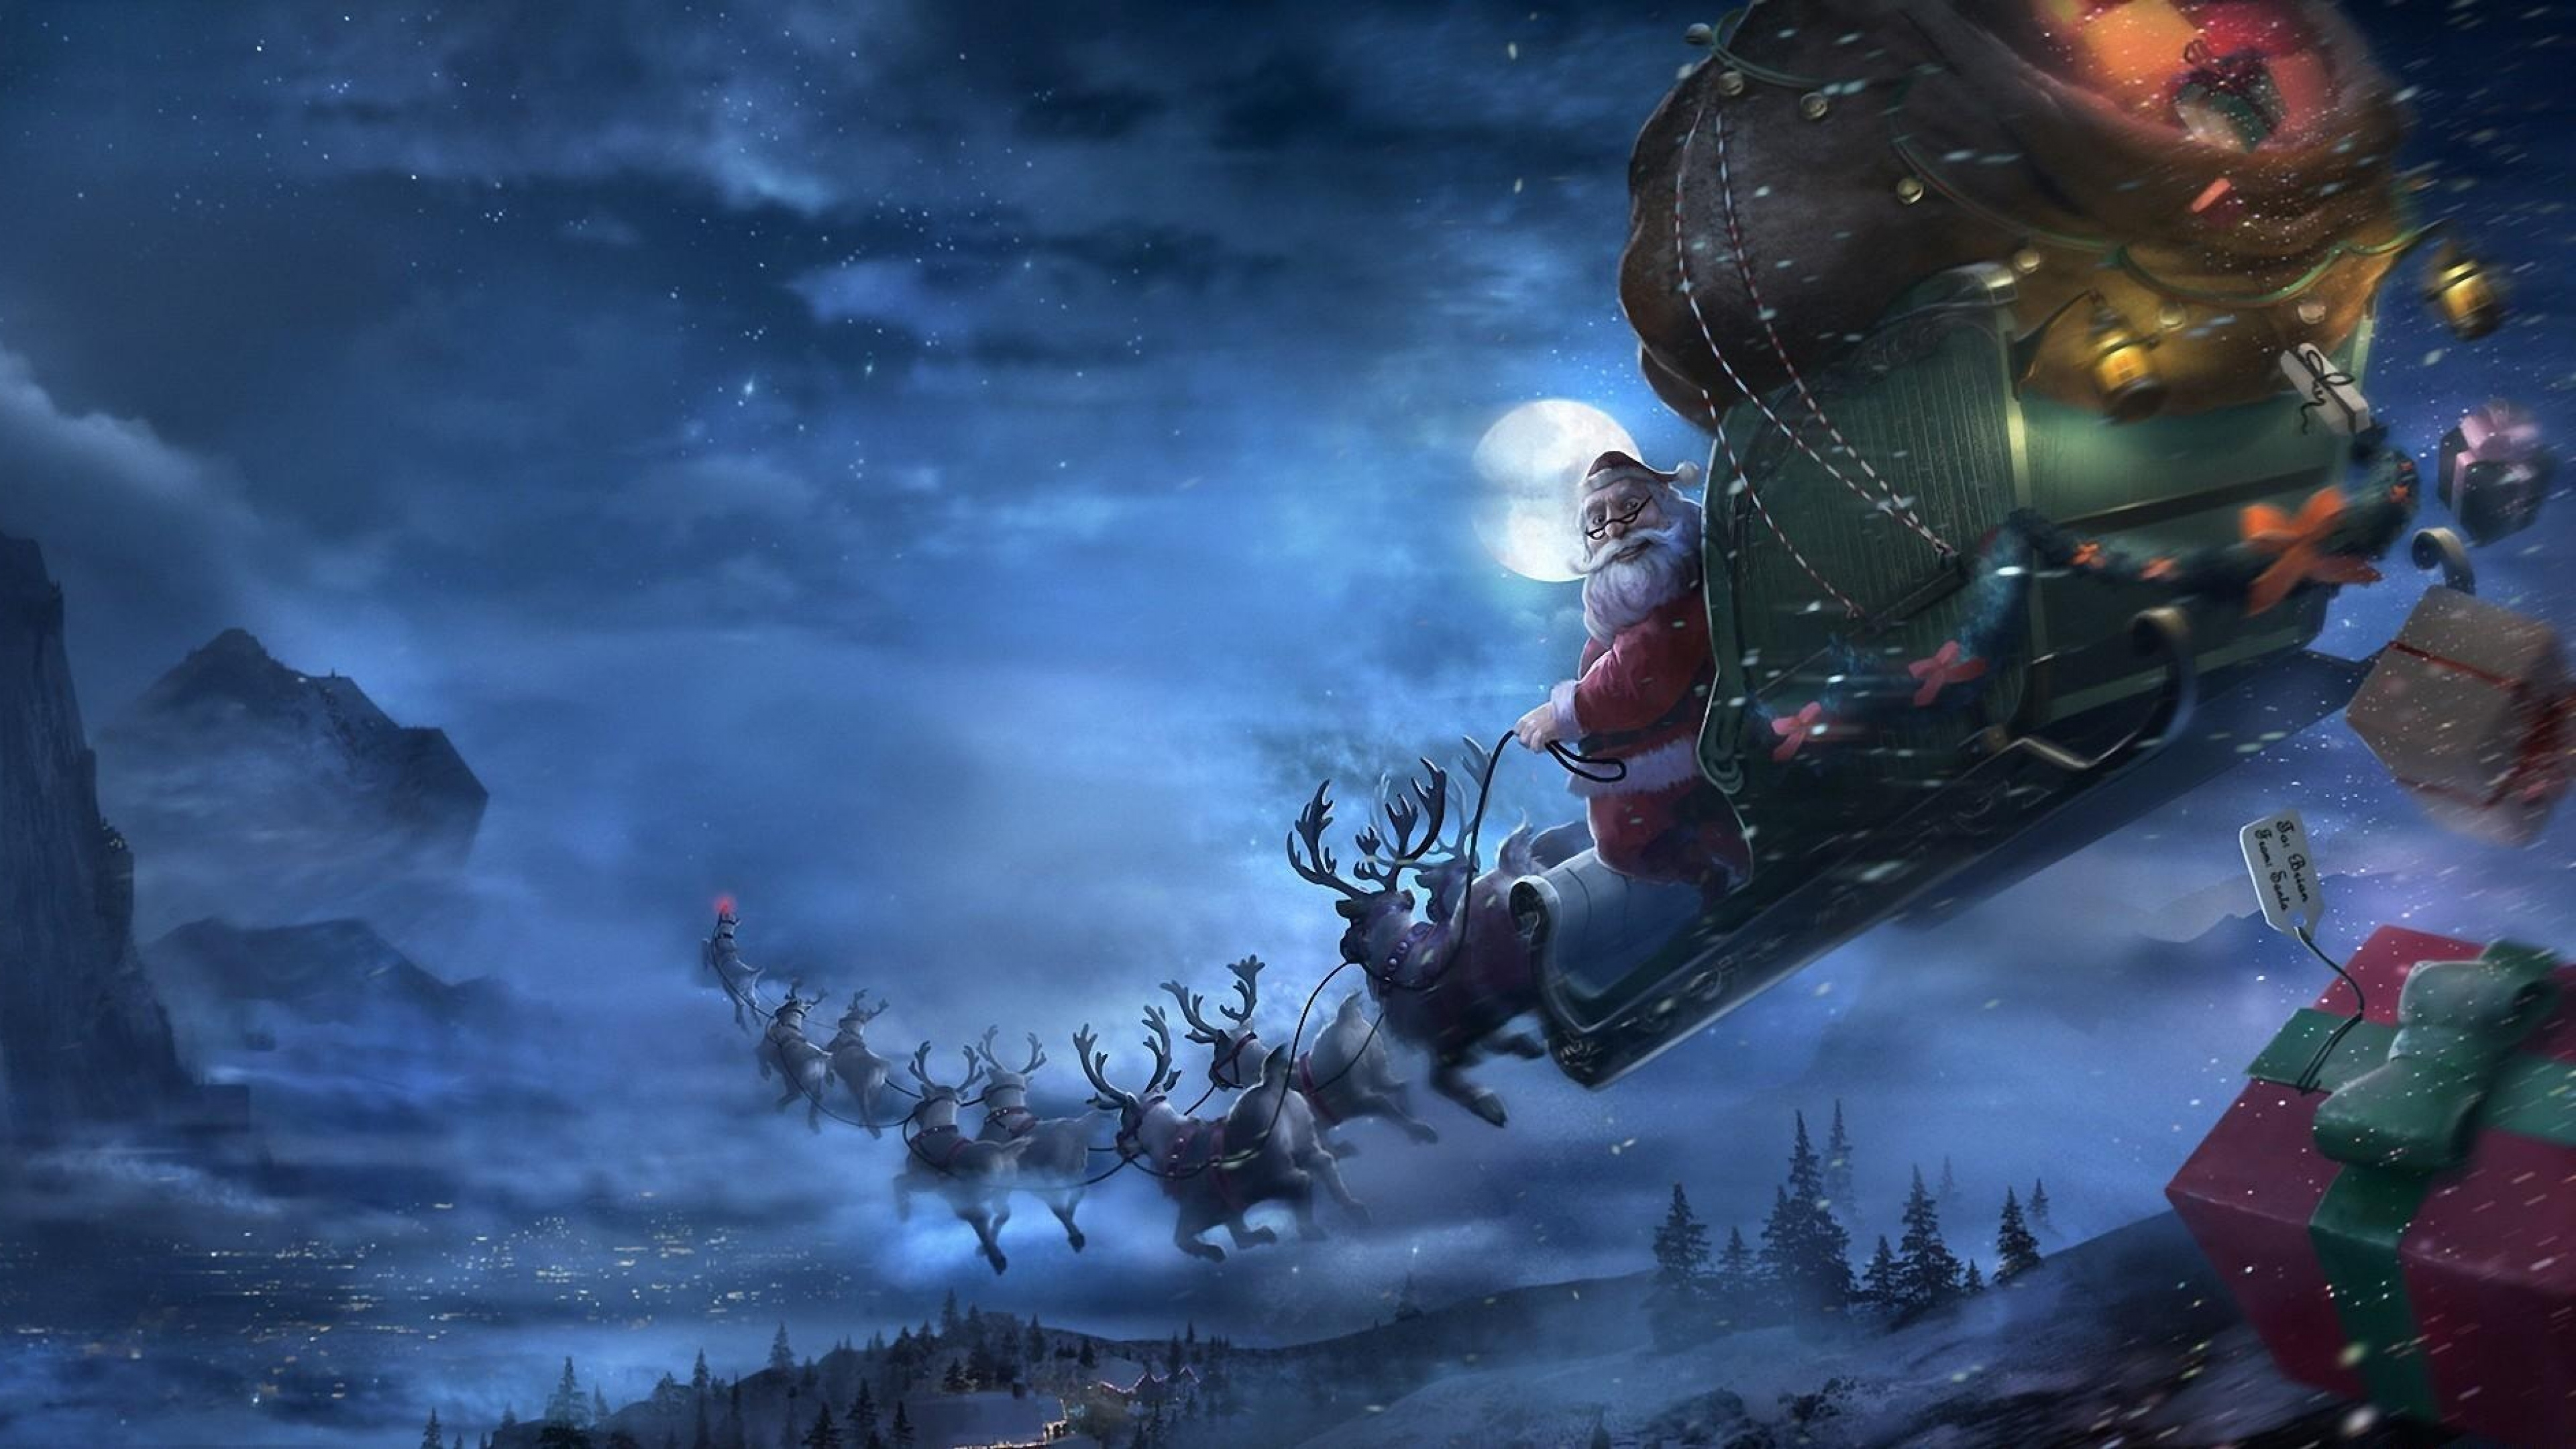 top 10 christmas backgrounds - photo #48